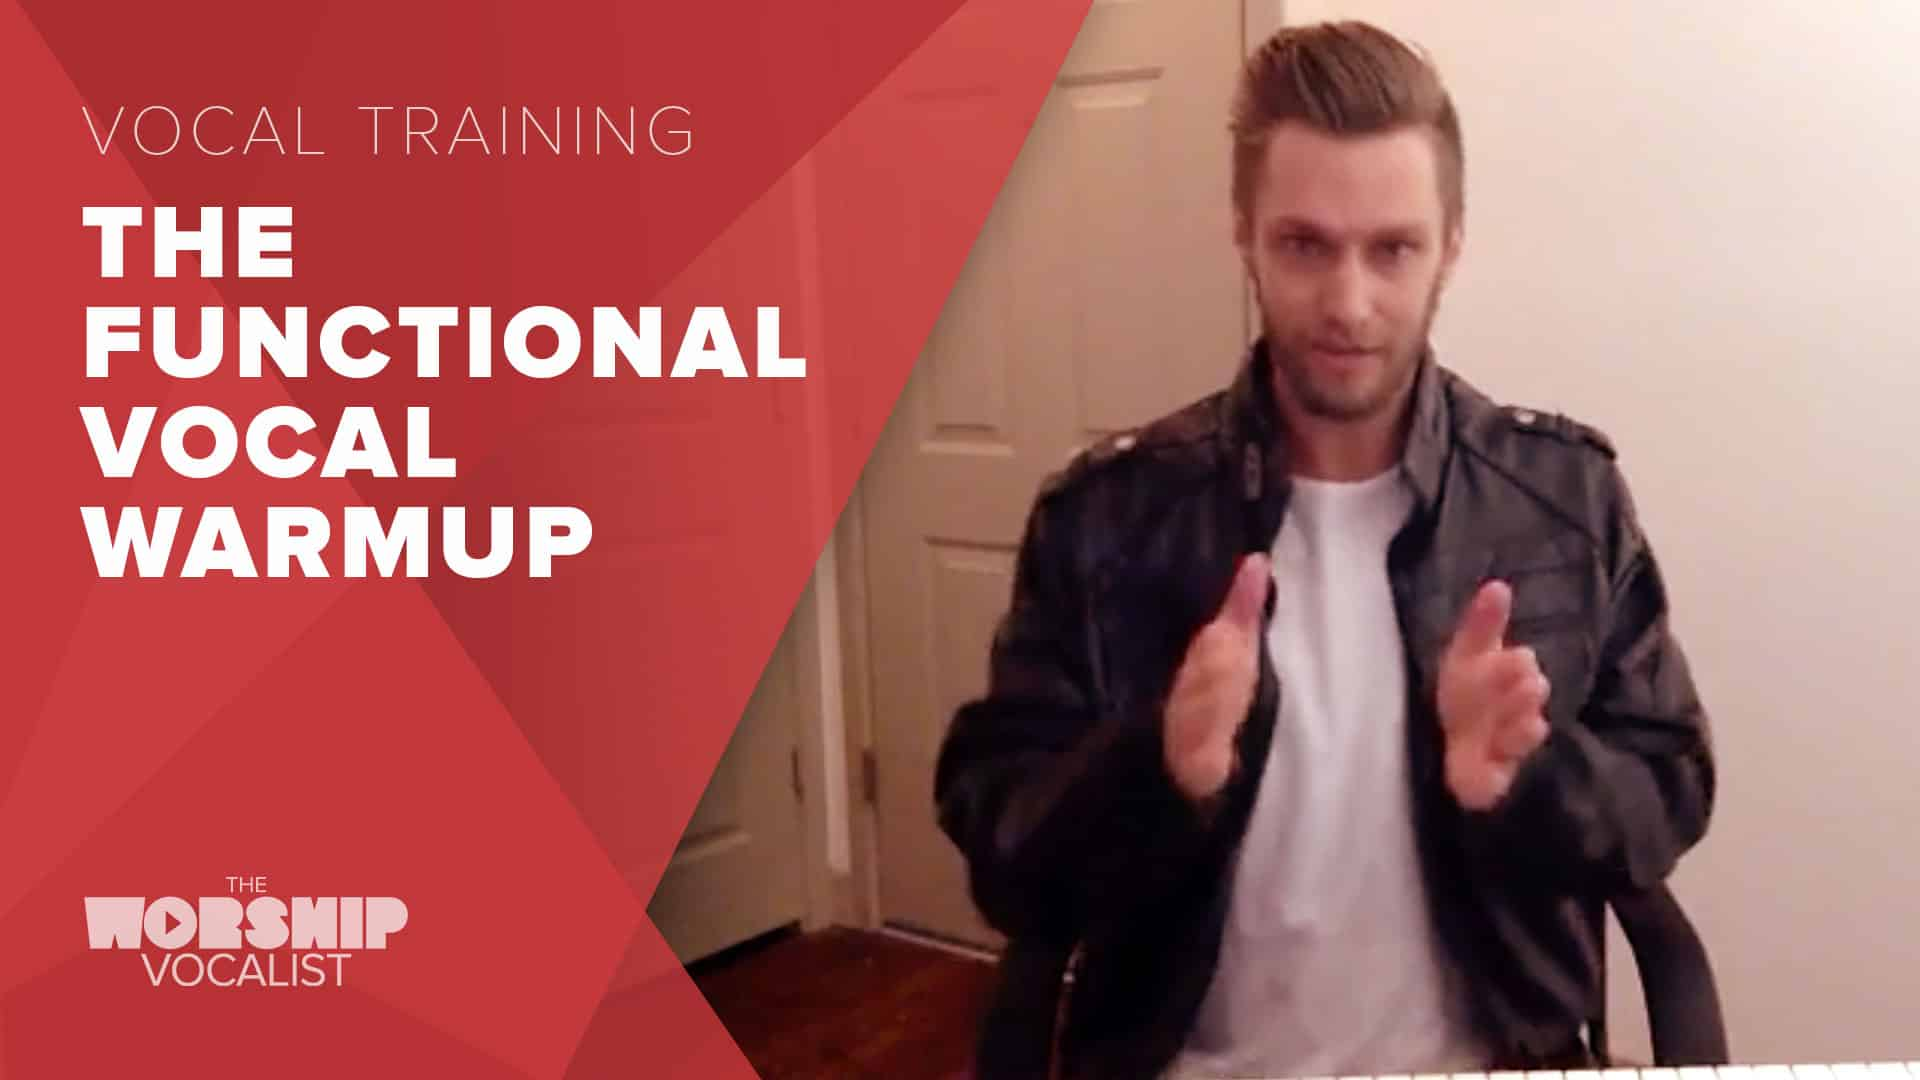 The Functional Vocal Warmup